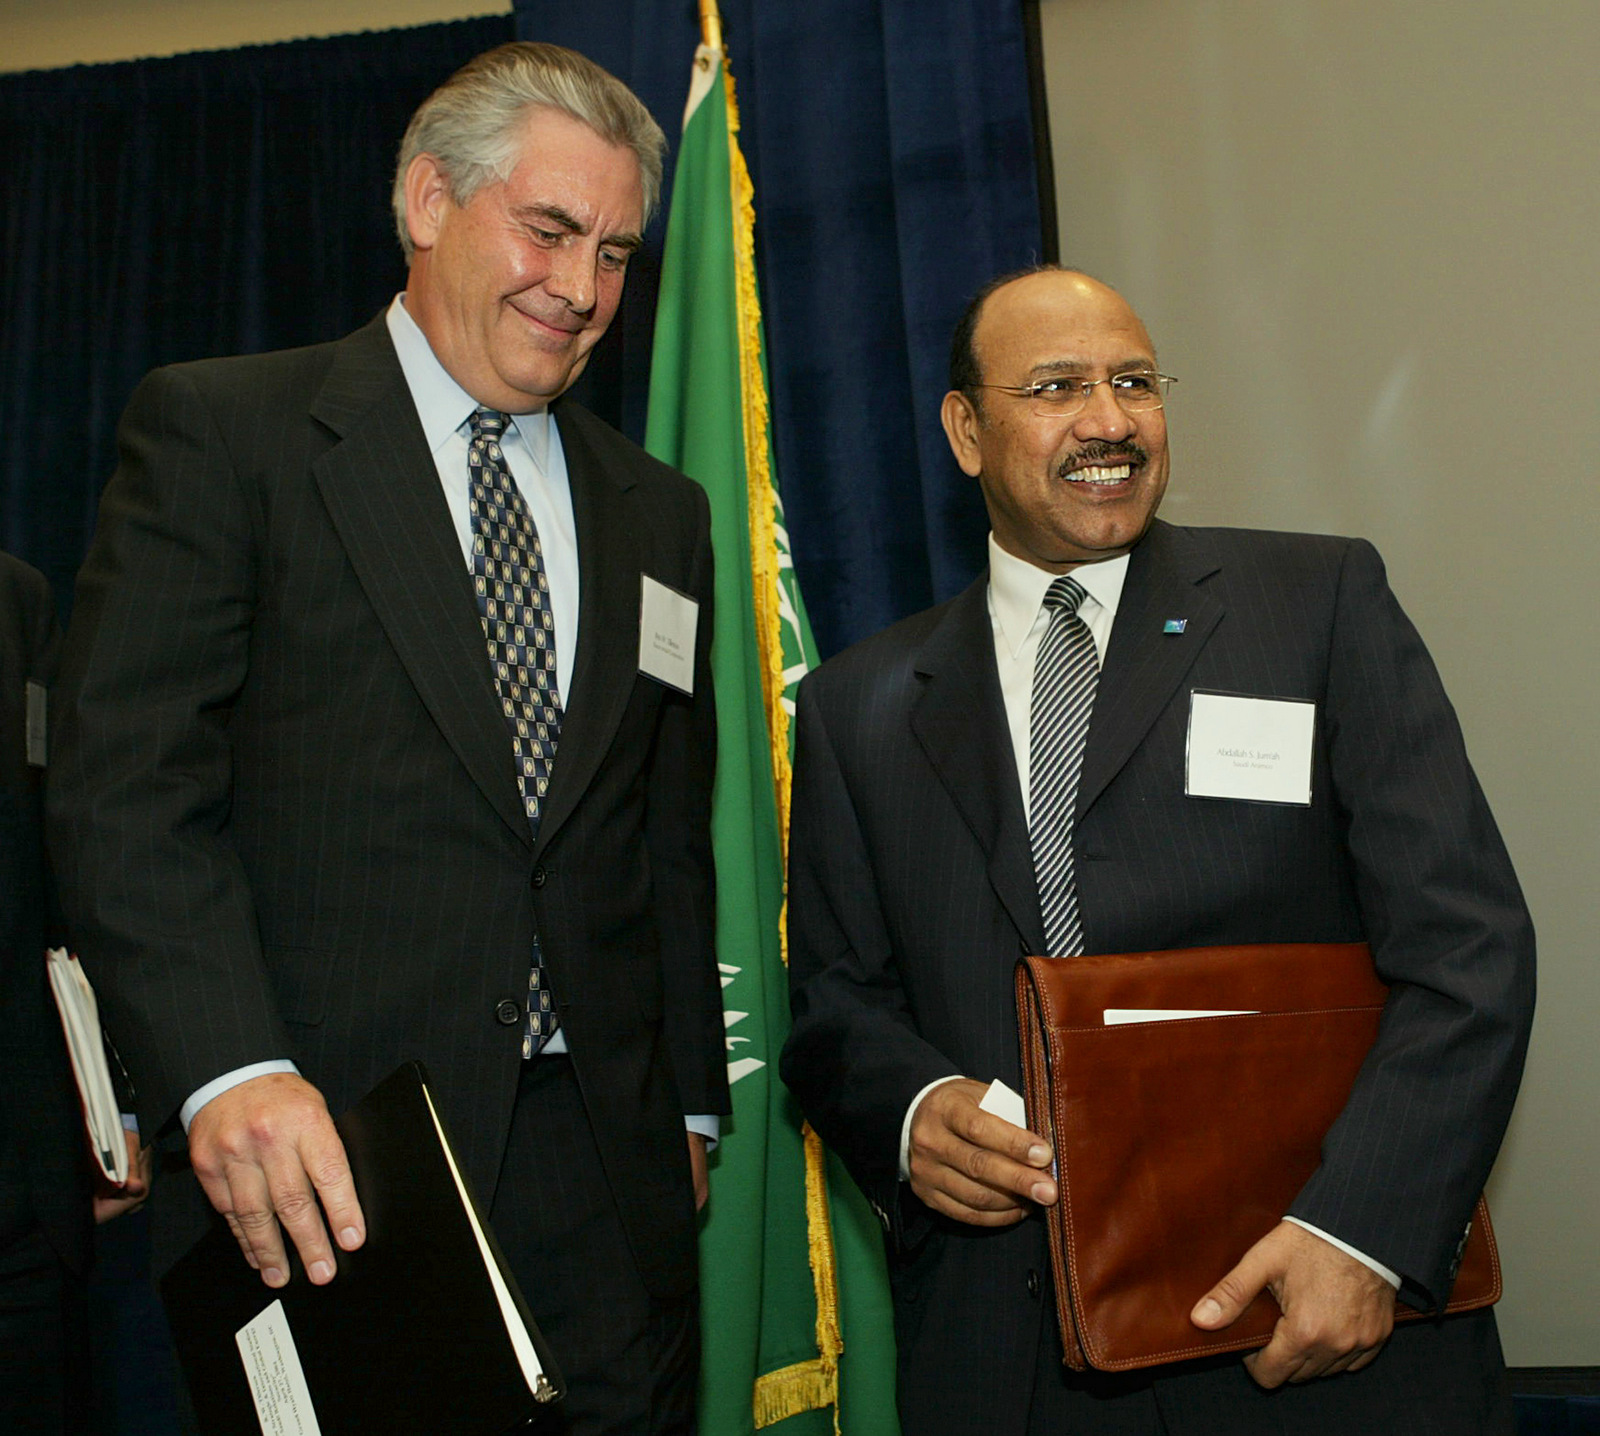 Saudi Aramco President and CEO Abdallah S. Jum'ah, right and Exxon Mobil Corporation President Rex Tillerson, attend a forum on U.S.-Saudi Relations and Global Energy Security, Tuesday, April 27, 2004, in Washington. (AP/Manuel Balce Ceneta)